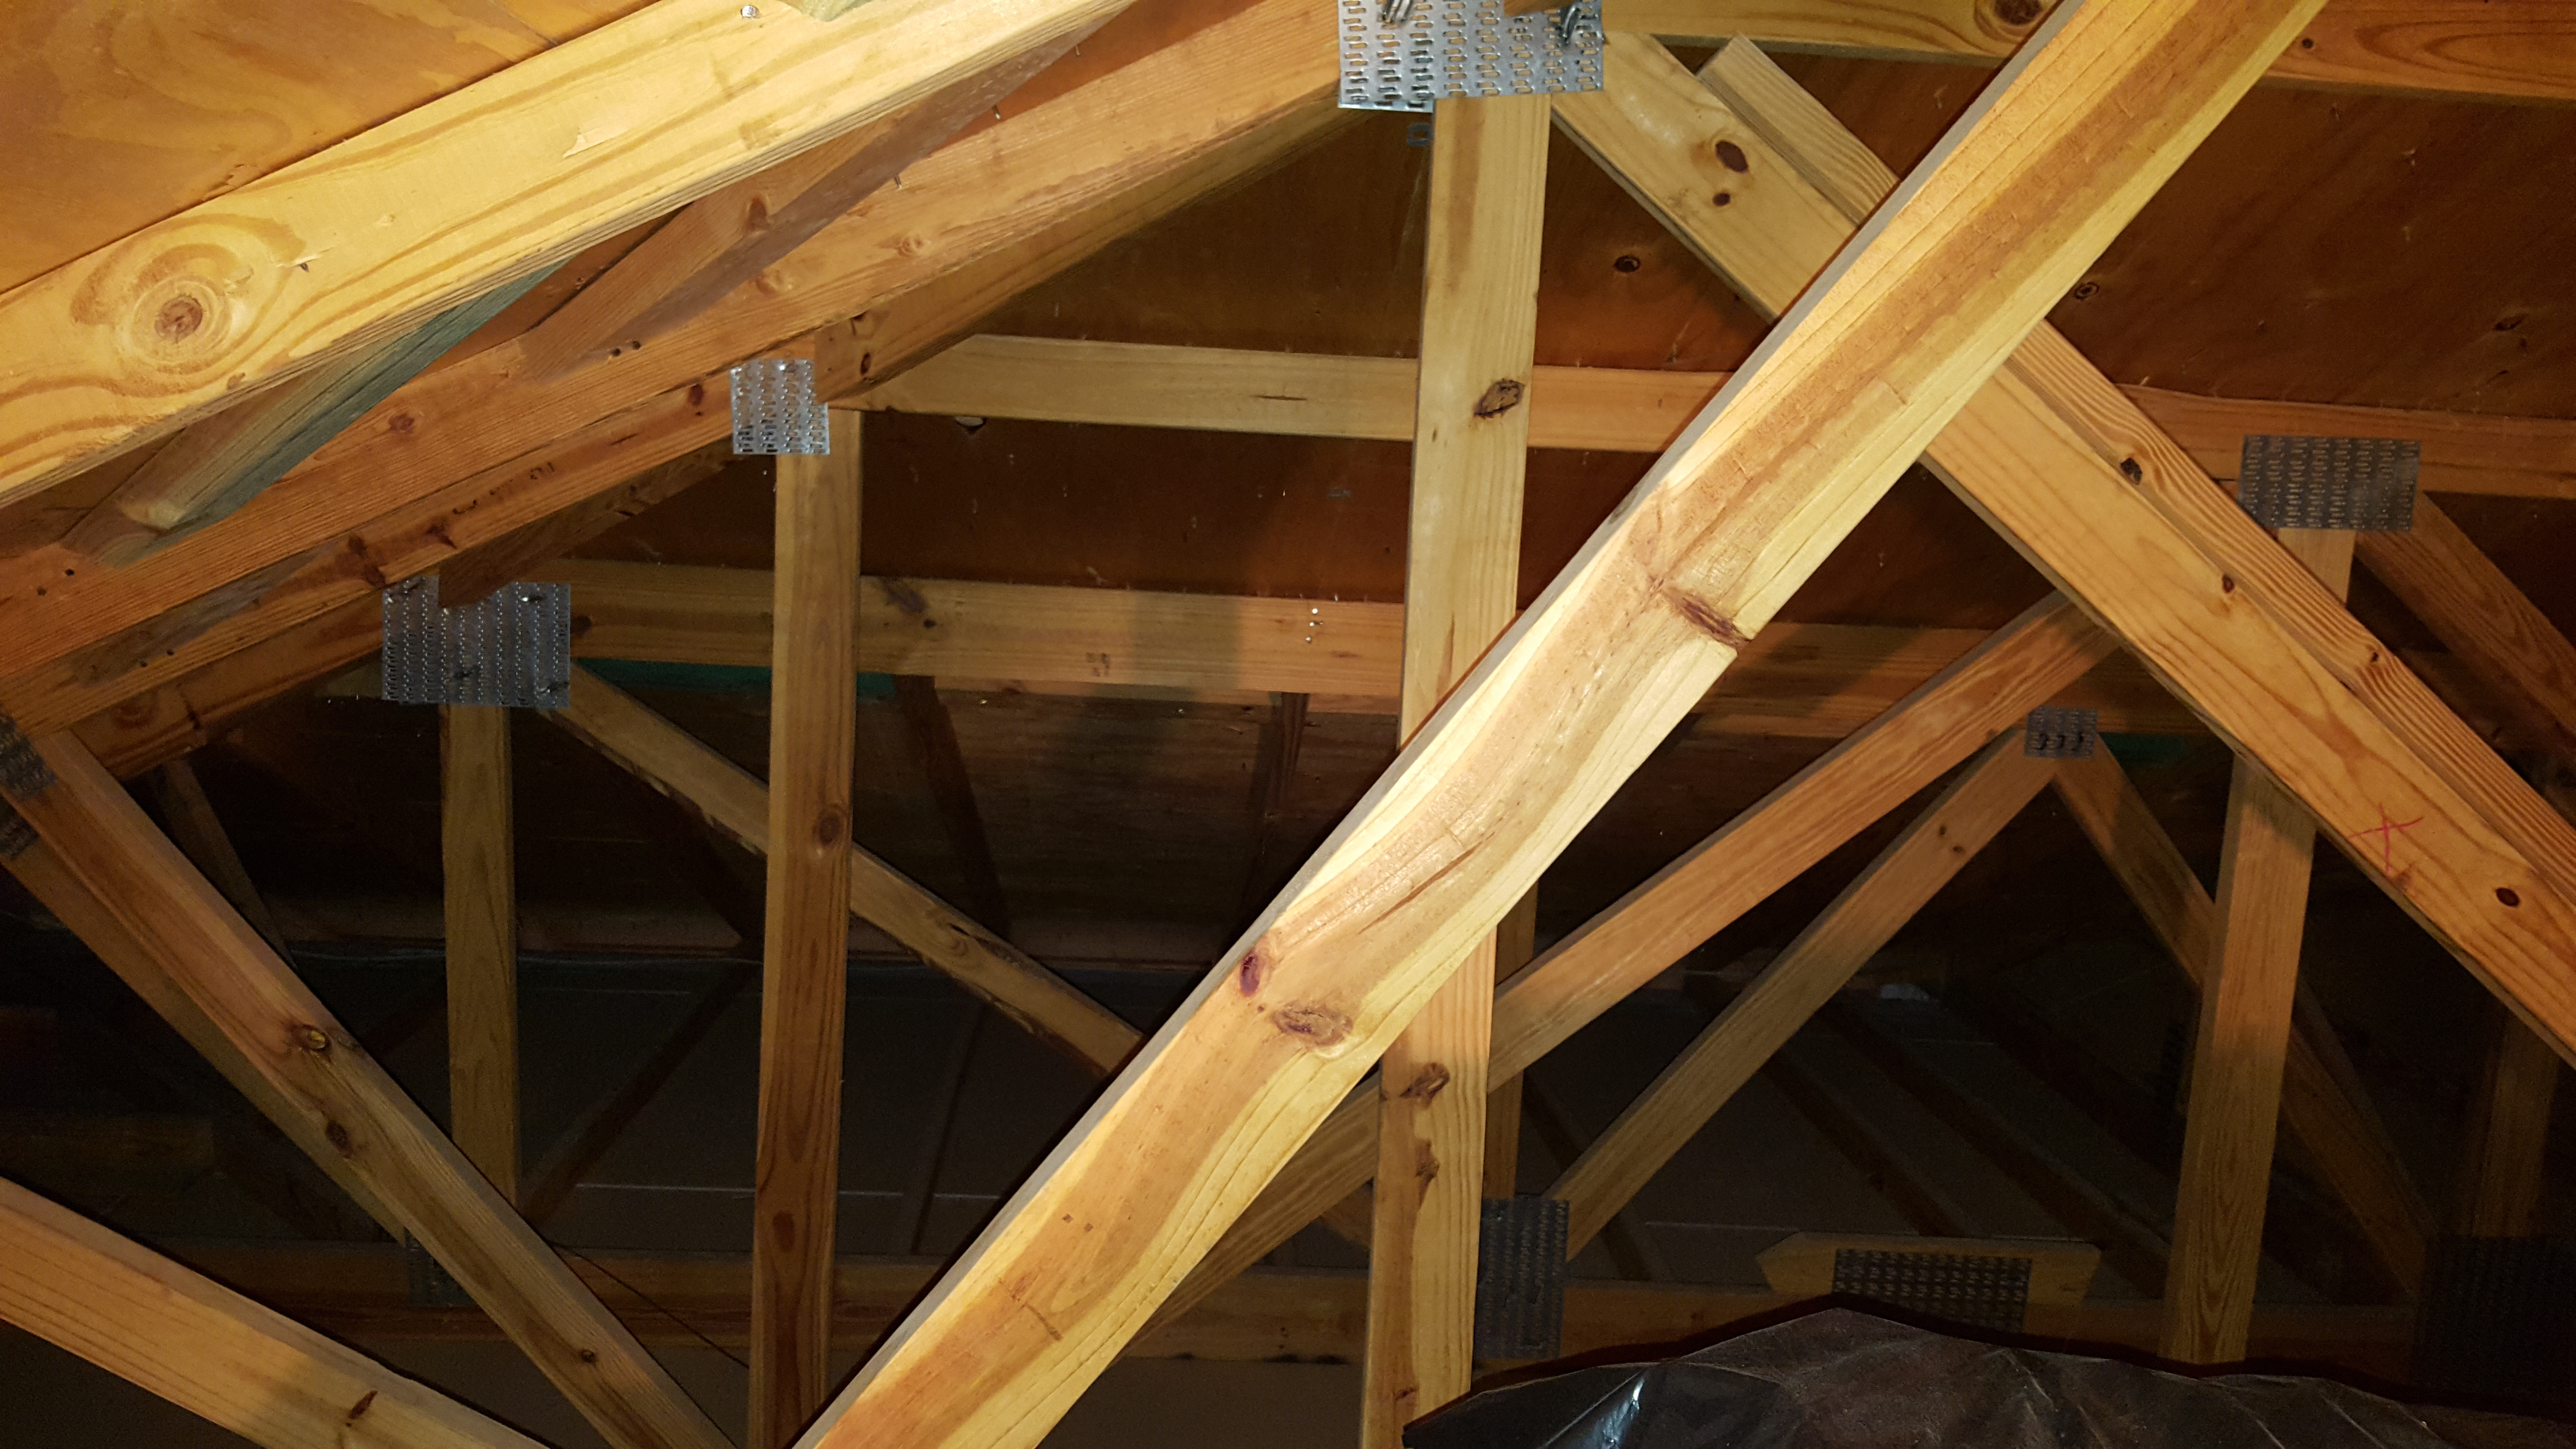 39 structural issues for home inspectors 39 course page 512 for Pre manufactured roof trusses